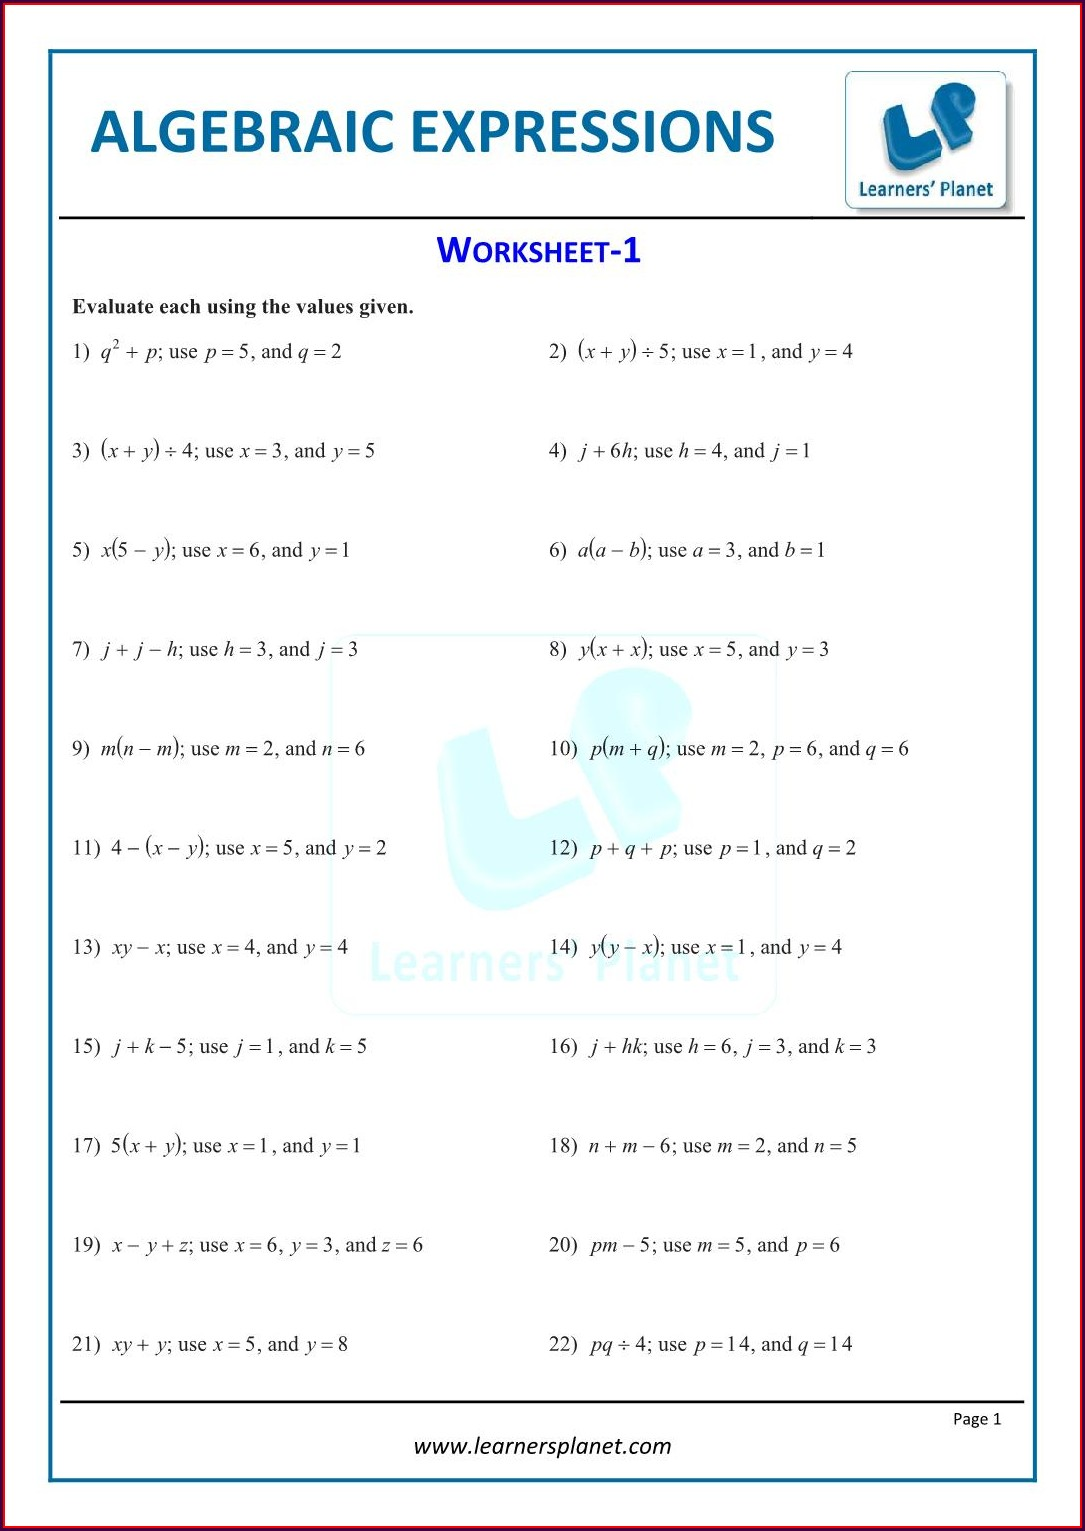 Worksheet On Algebraic Expressions For Class 6